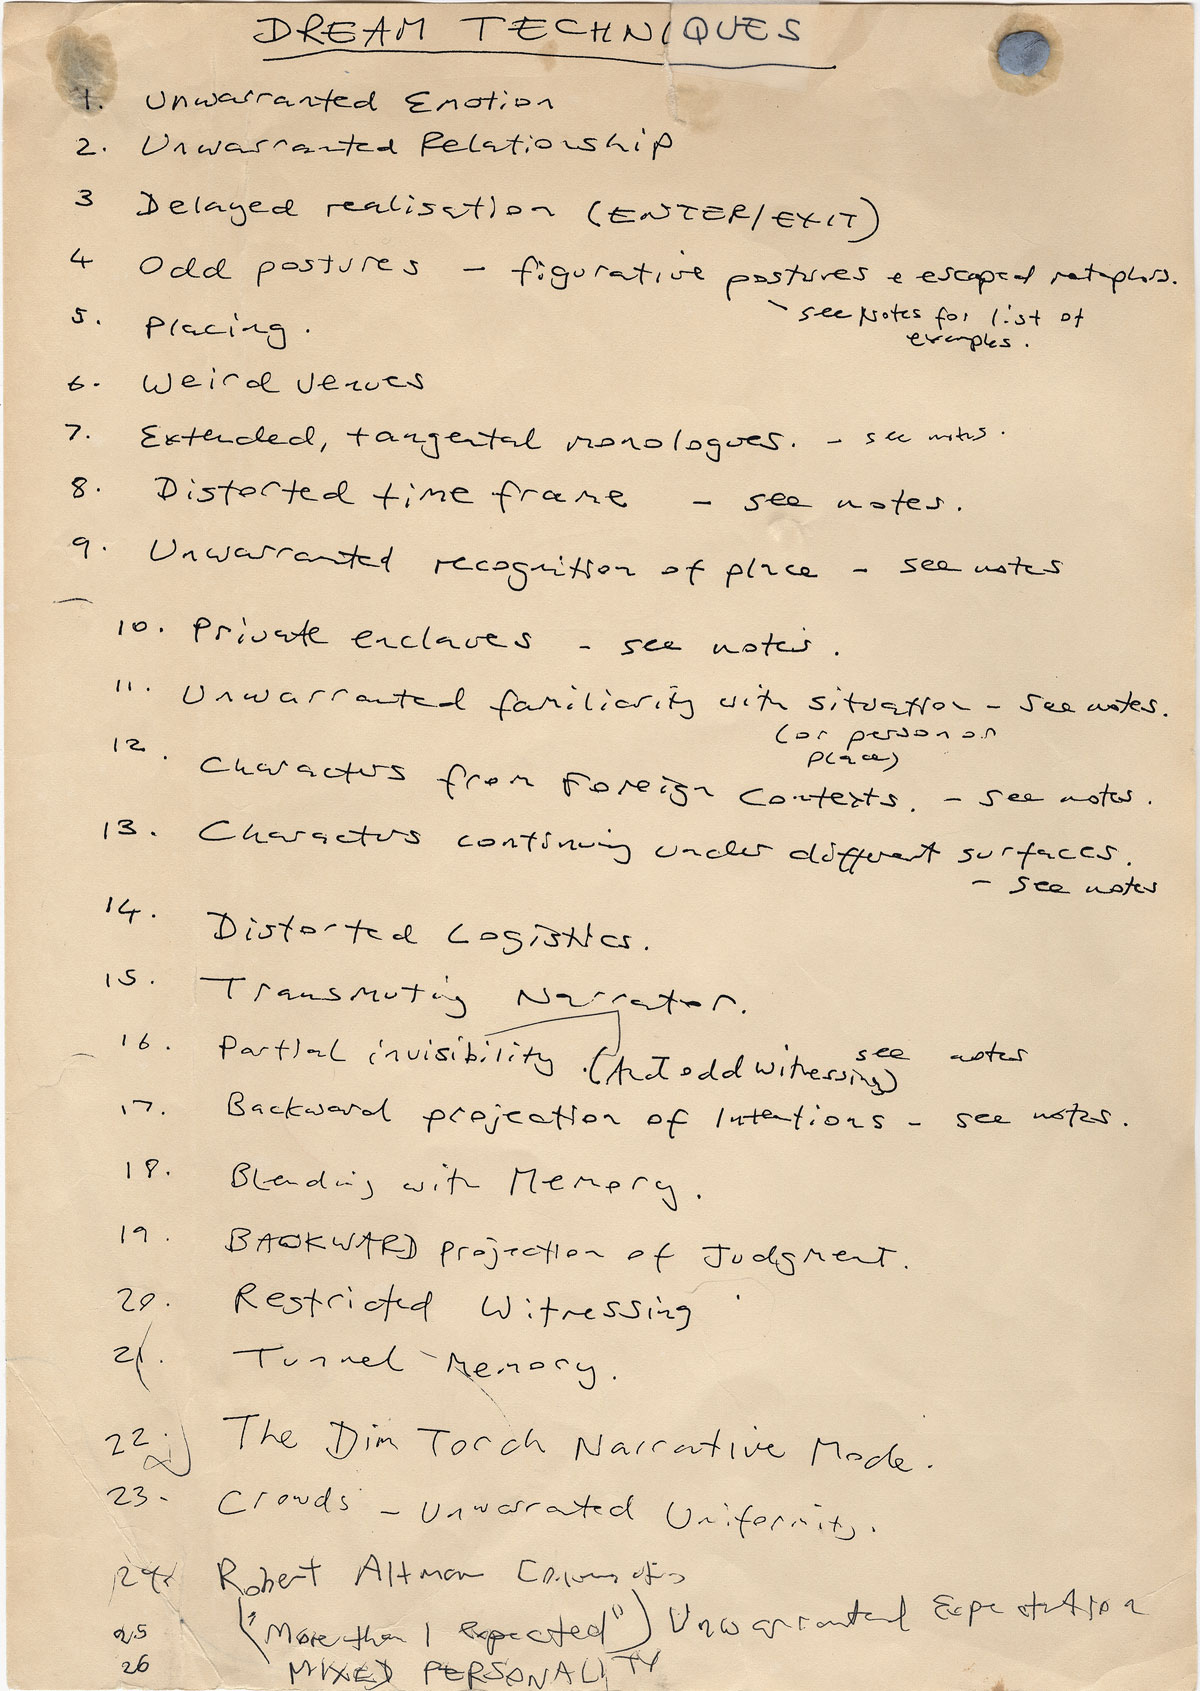 Kazuo Ishiguro's Dream Techniques page for The Unconsoled.